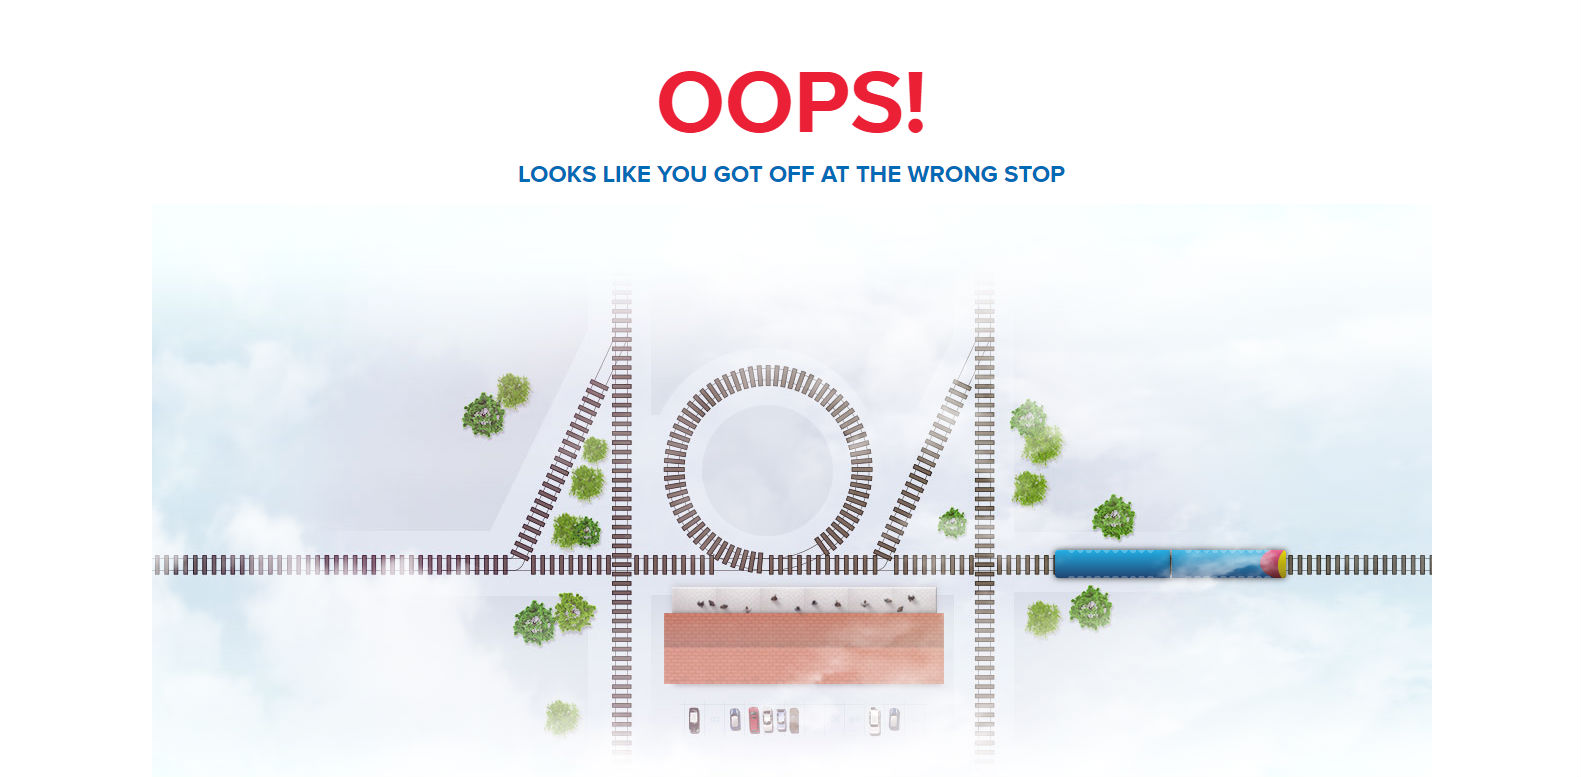 South West Trains 404 page